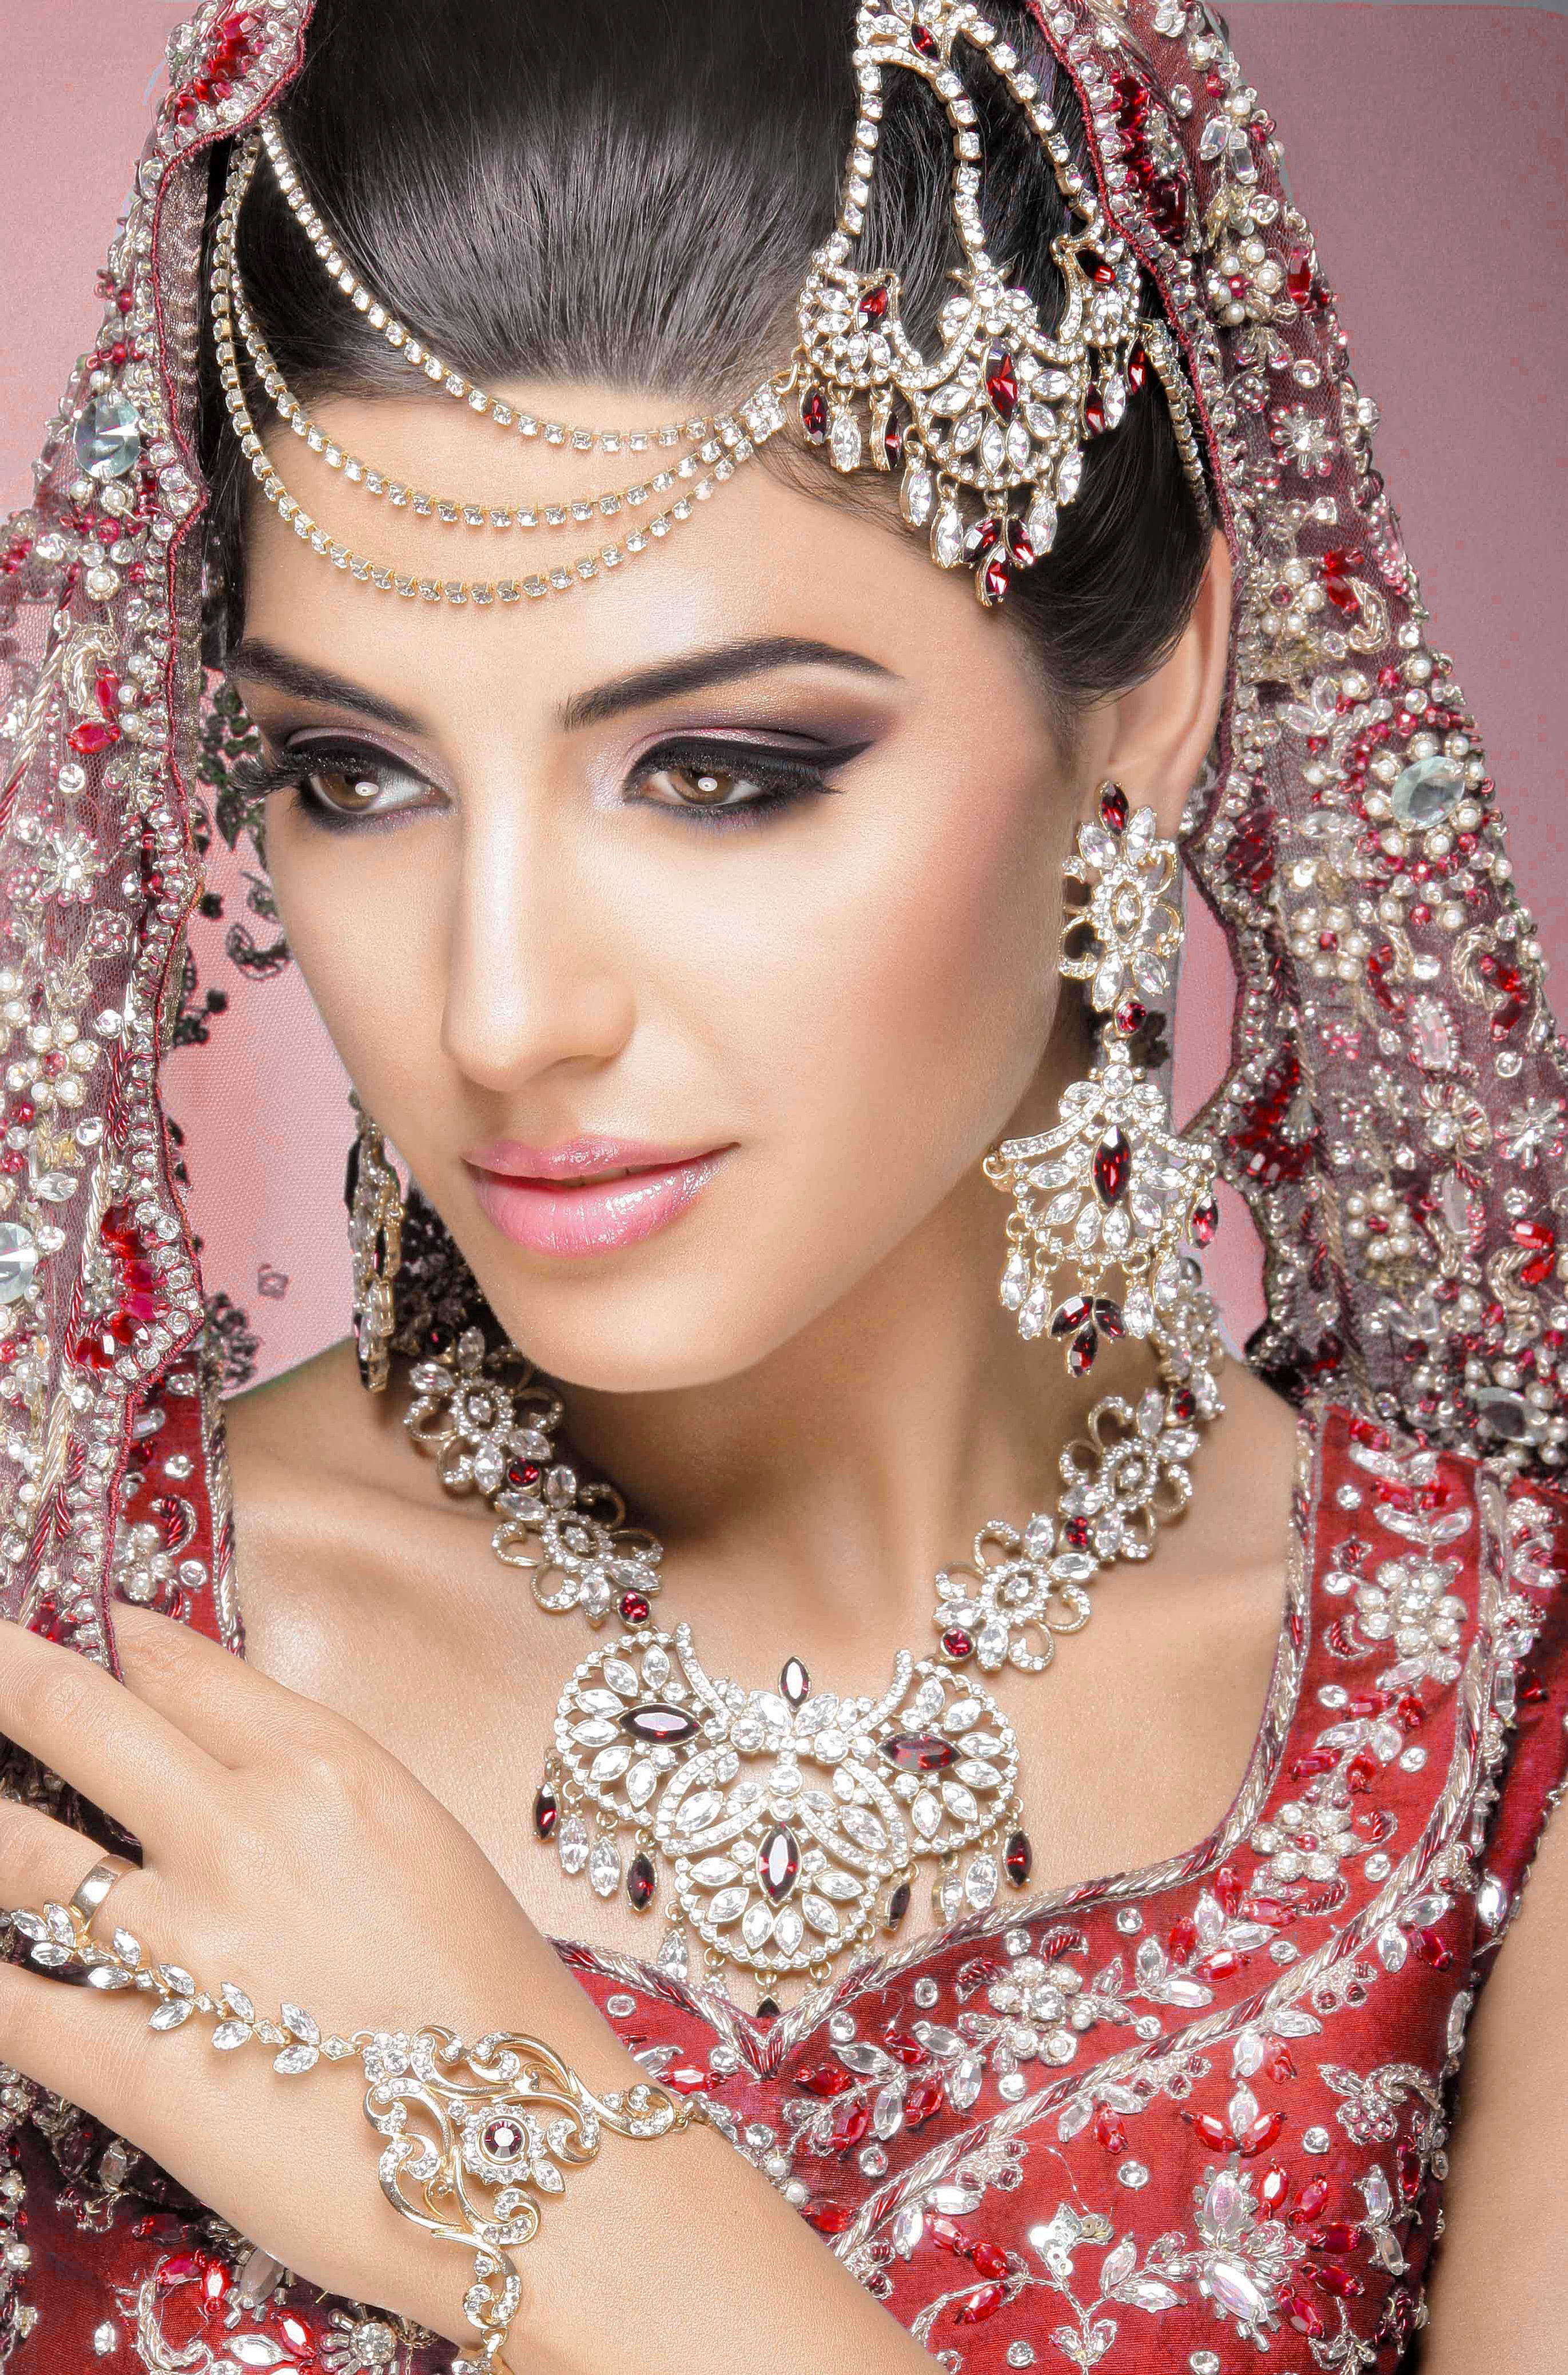 Beach Wedding Makeup Asian : Asian Bridal Makeup artist London Asian bridal makeup ...